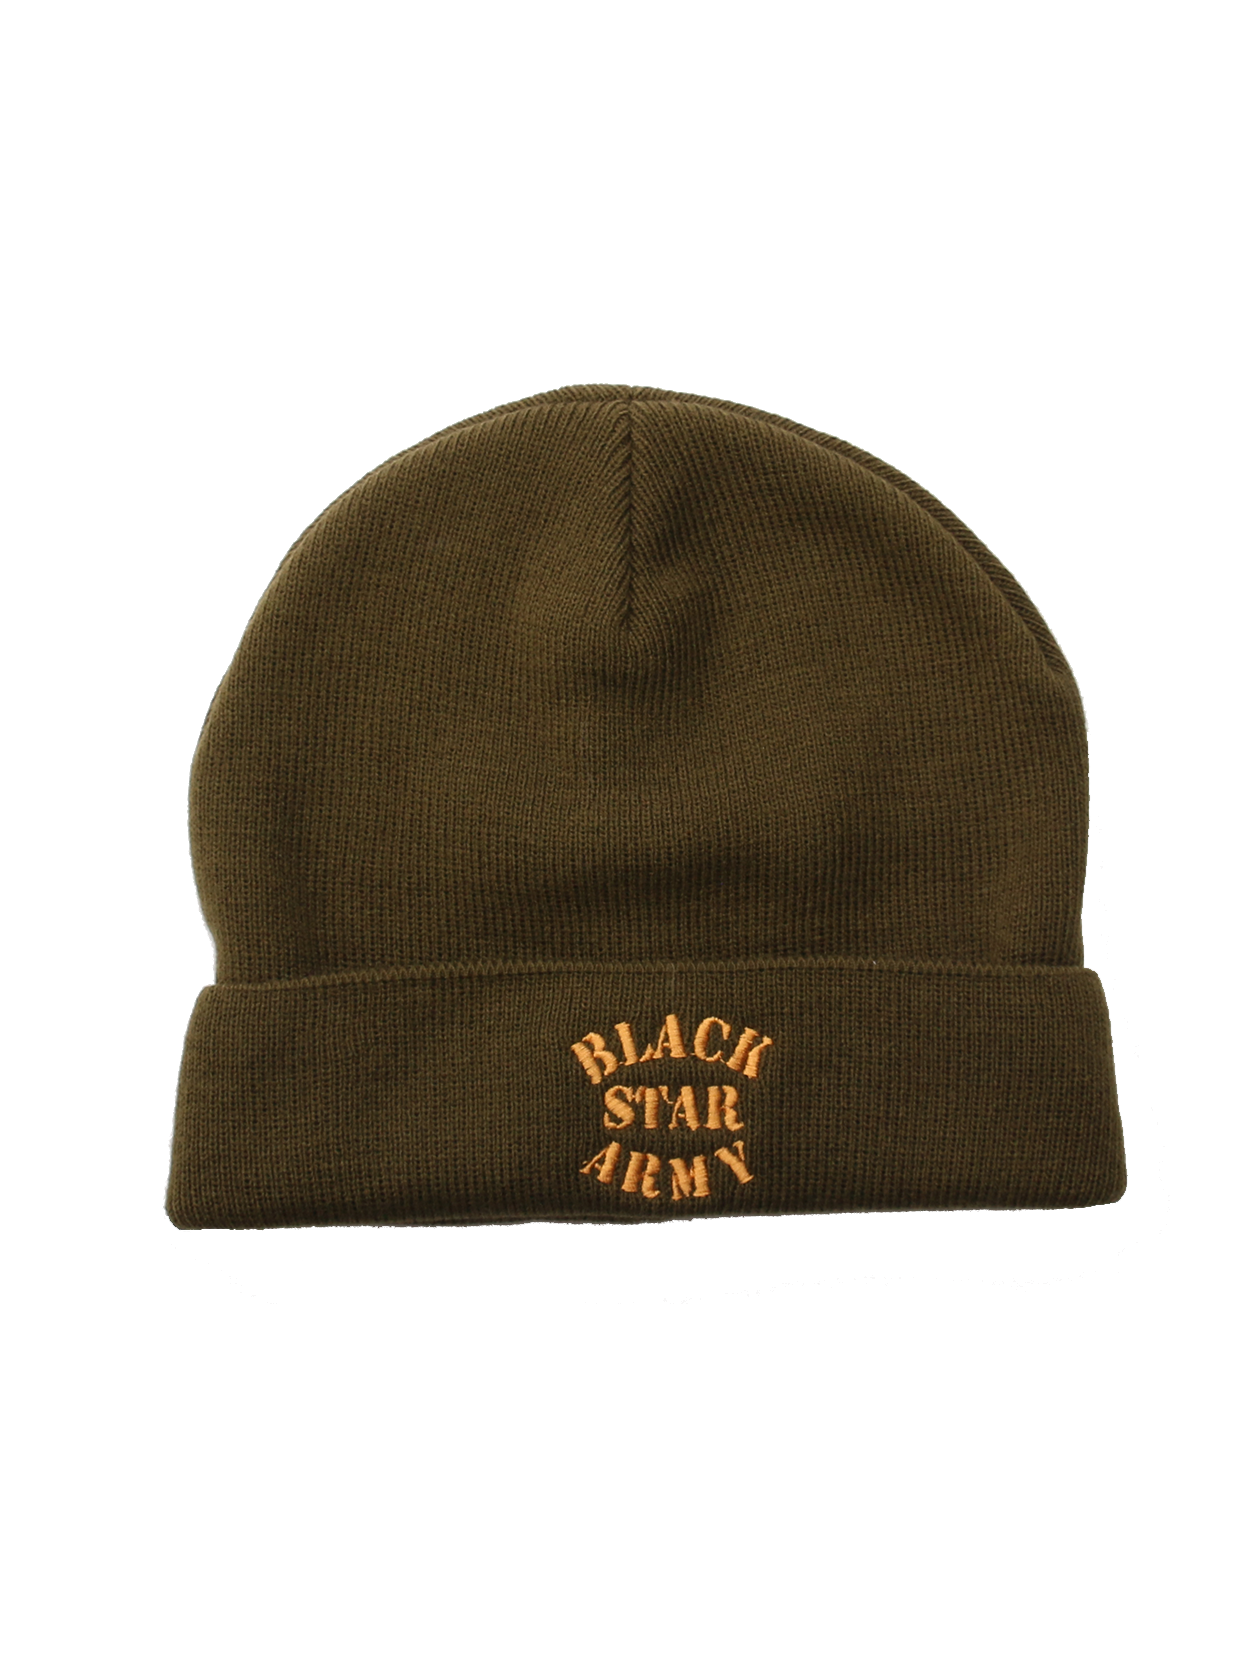 Kids hat Black Star ArmyKids beanie in khaki by Black Star Wear. Turn-up brim, ribbed design, 100% acrylic. Embroidery with Black Star Army lettering. One size.<br><br>size: One size<br>color: Khaki<br>gender: unisex